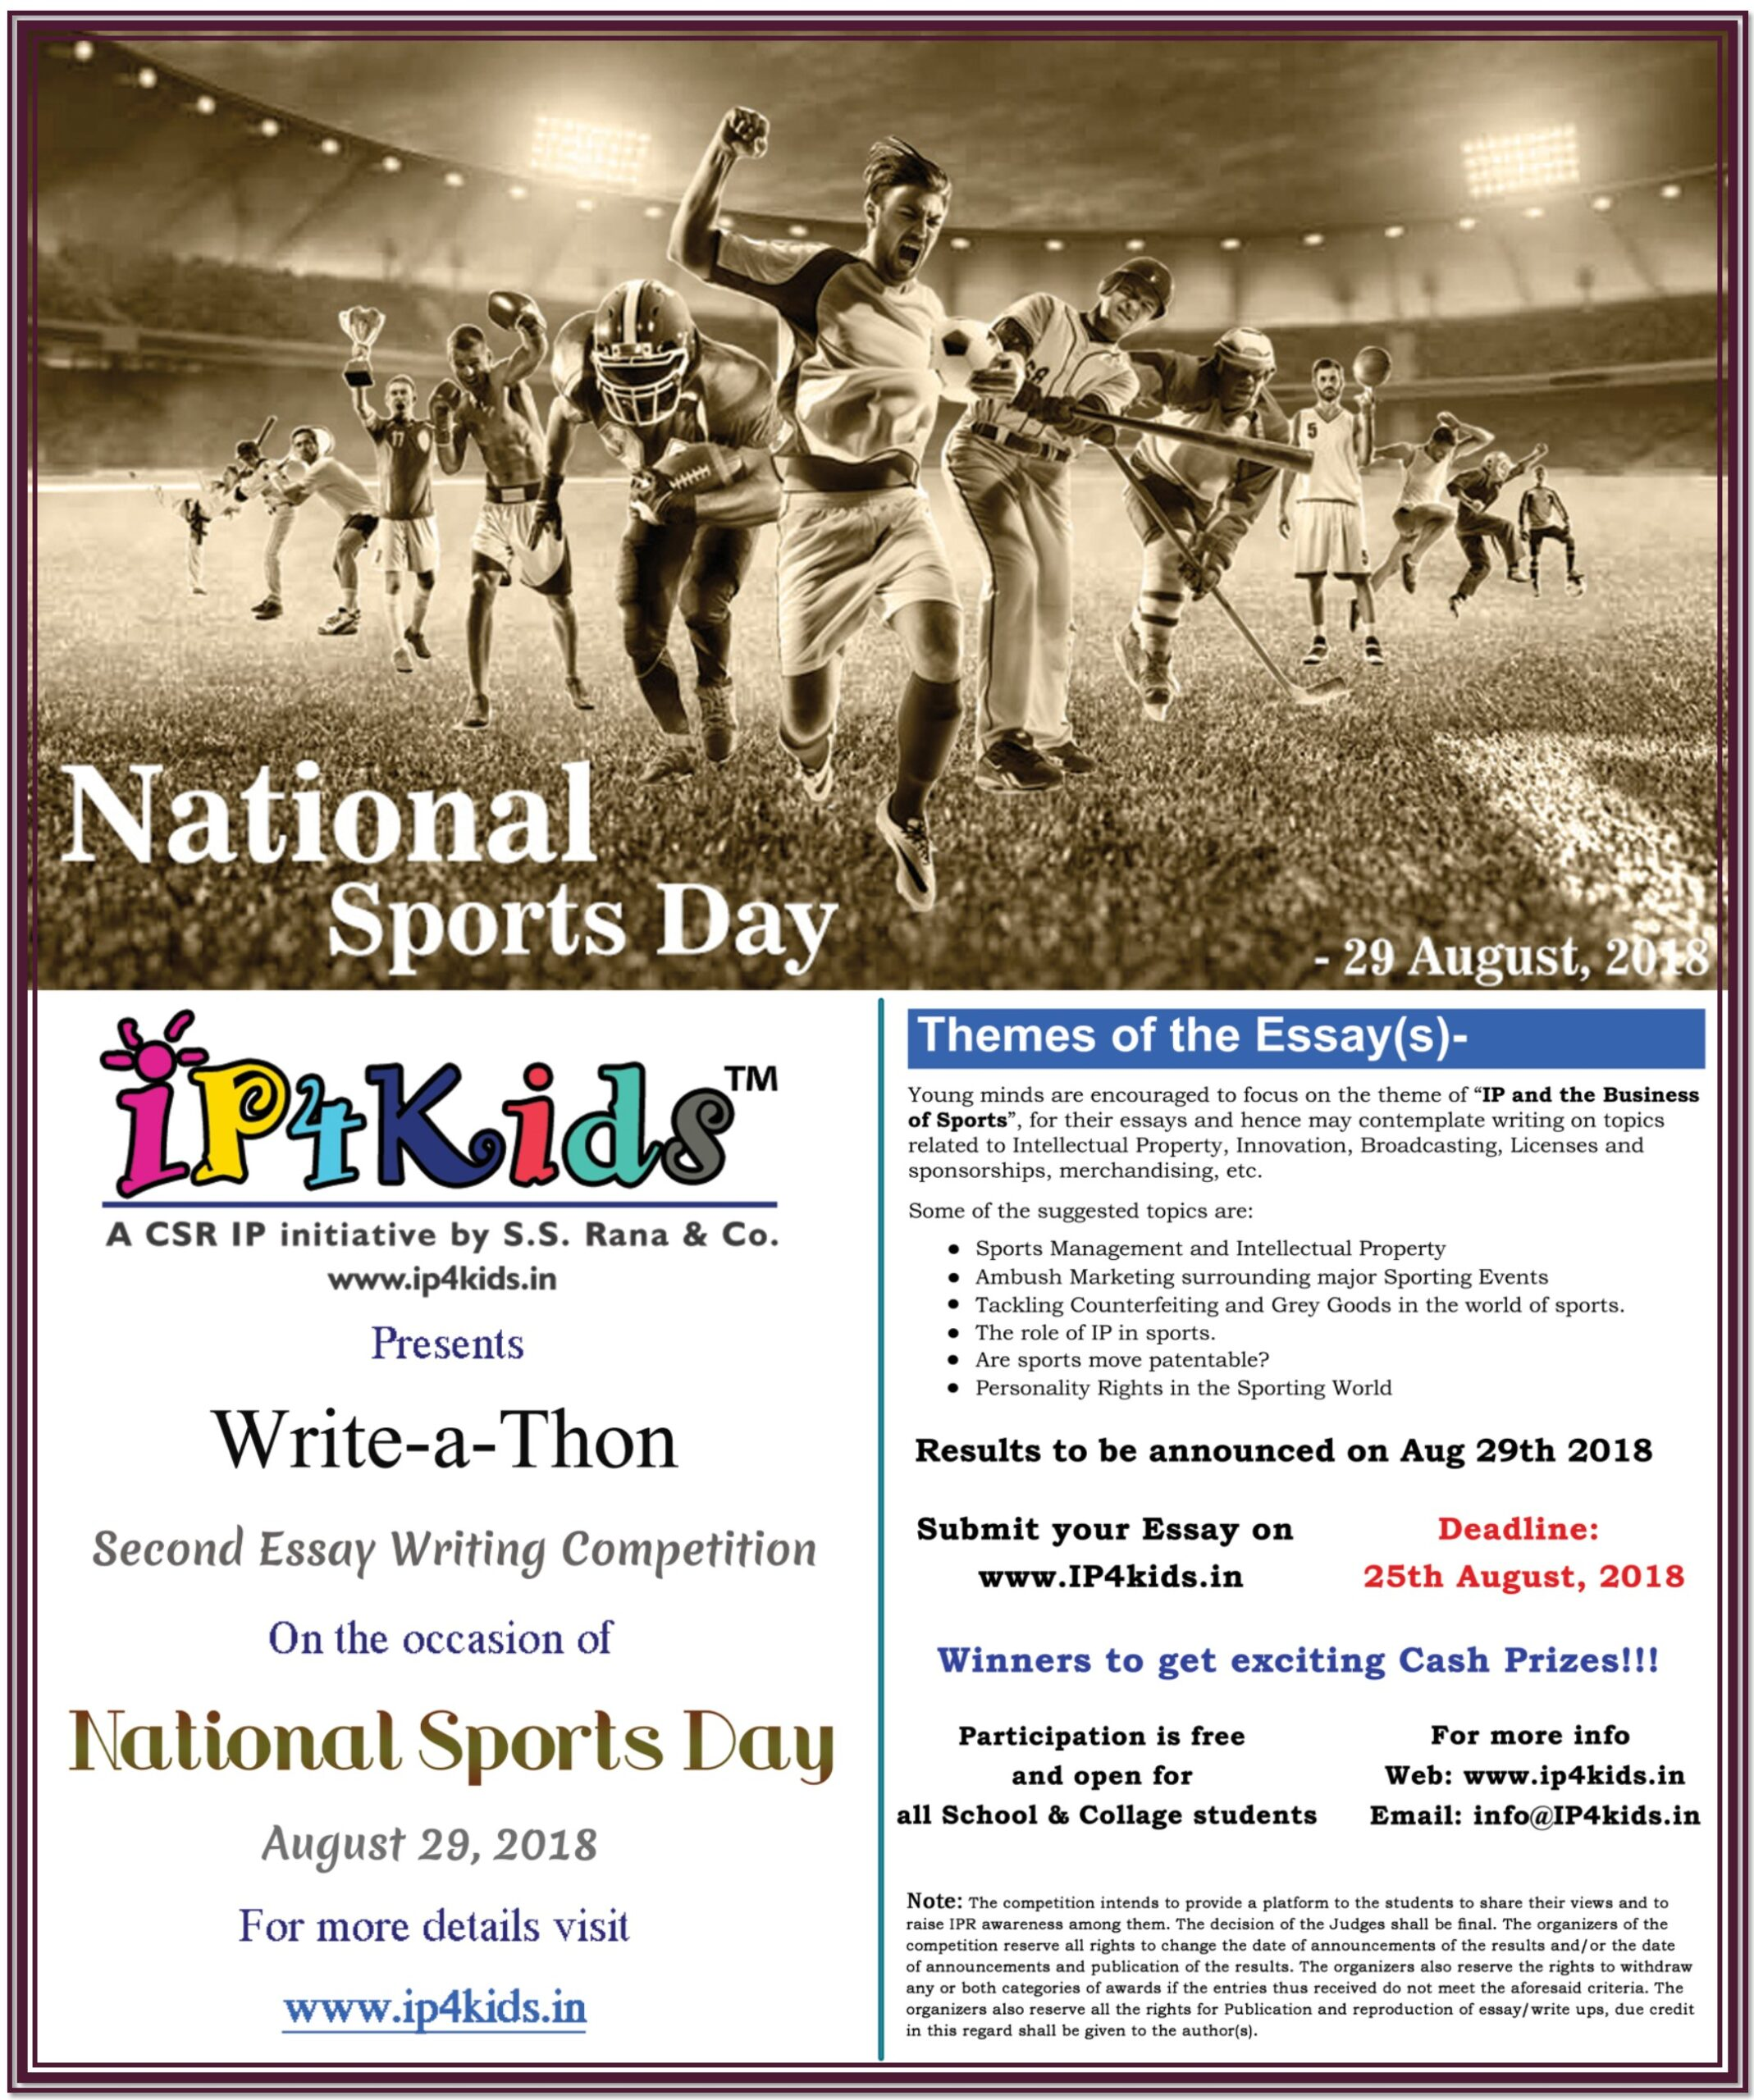 2nd Write-a-Thon Essay Writing Competition on IP in the field of Sports [Prizes Worth Rs. 19K]: Submit by Aug 25